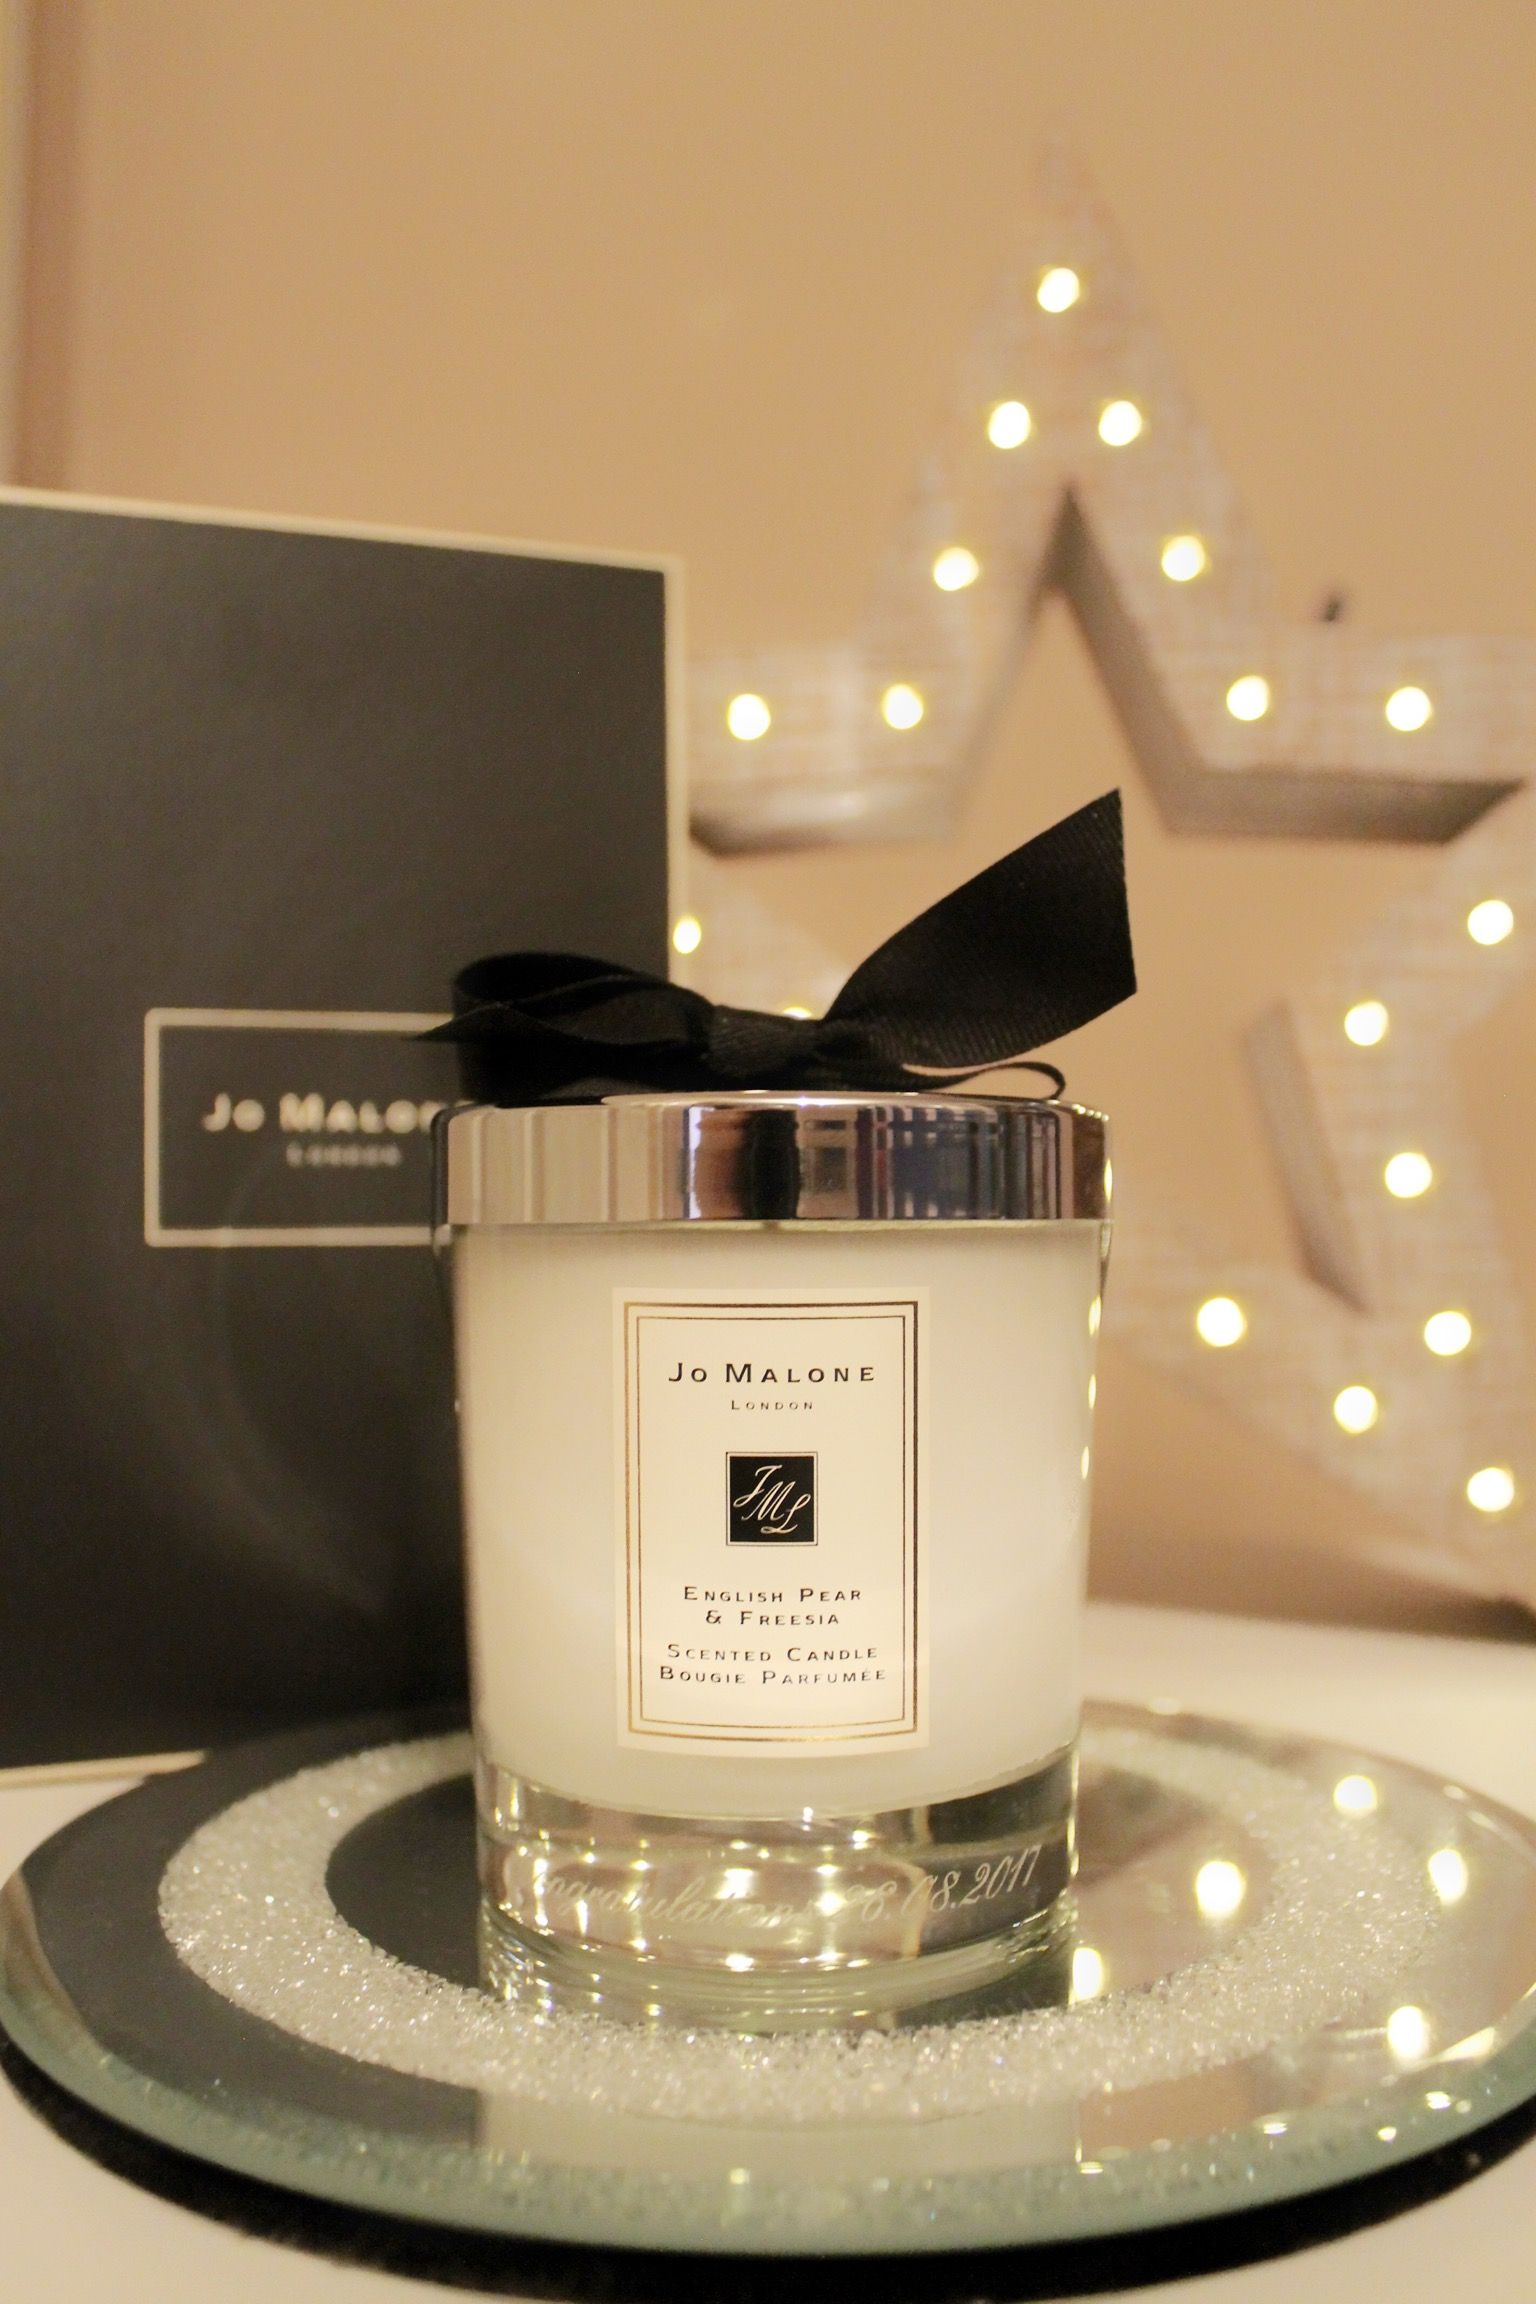 engraved jo malone s candle blog posts pinterest jo malone and